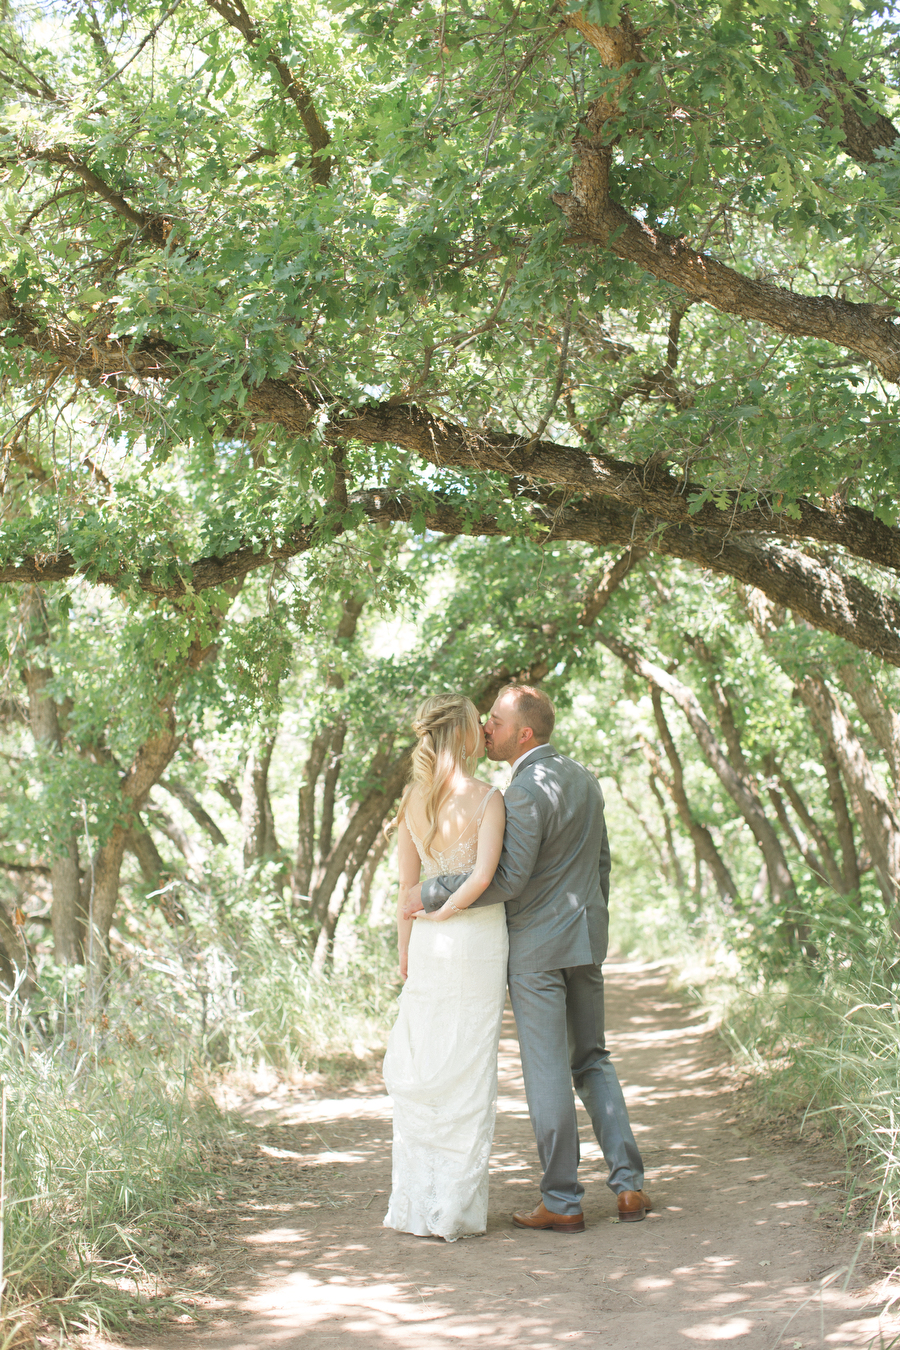 MARIACORONAPHOTOGRAPHY_WEDDING_UTAH_0187.JPG